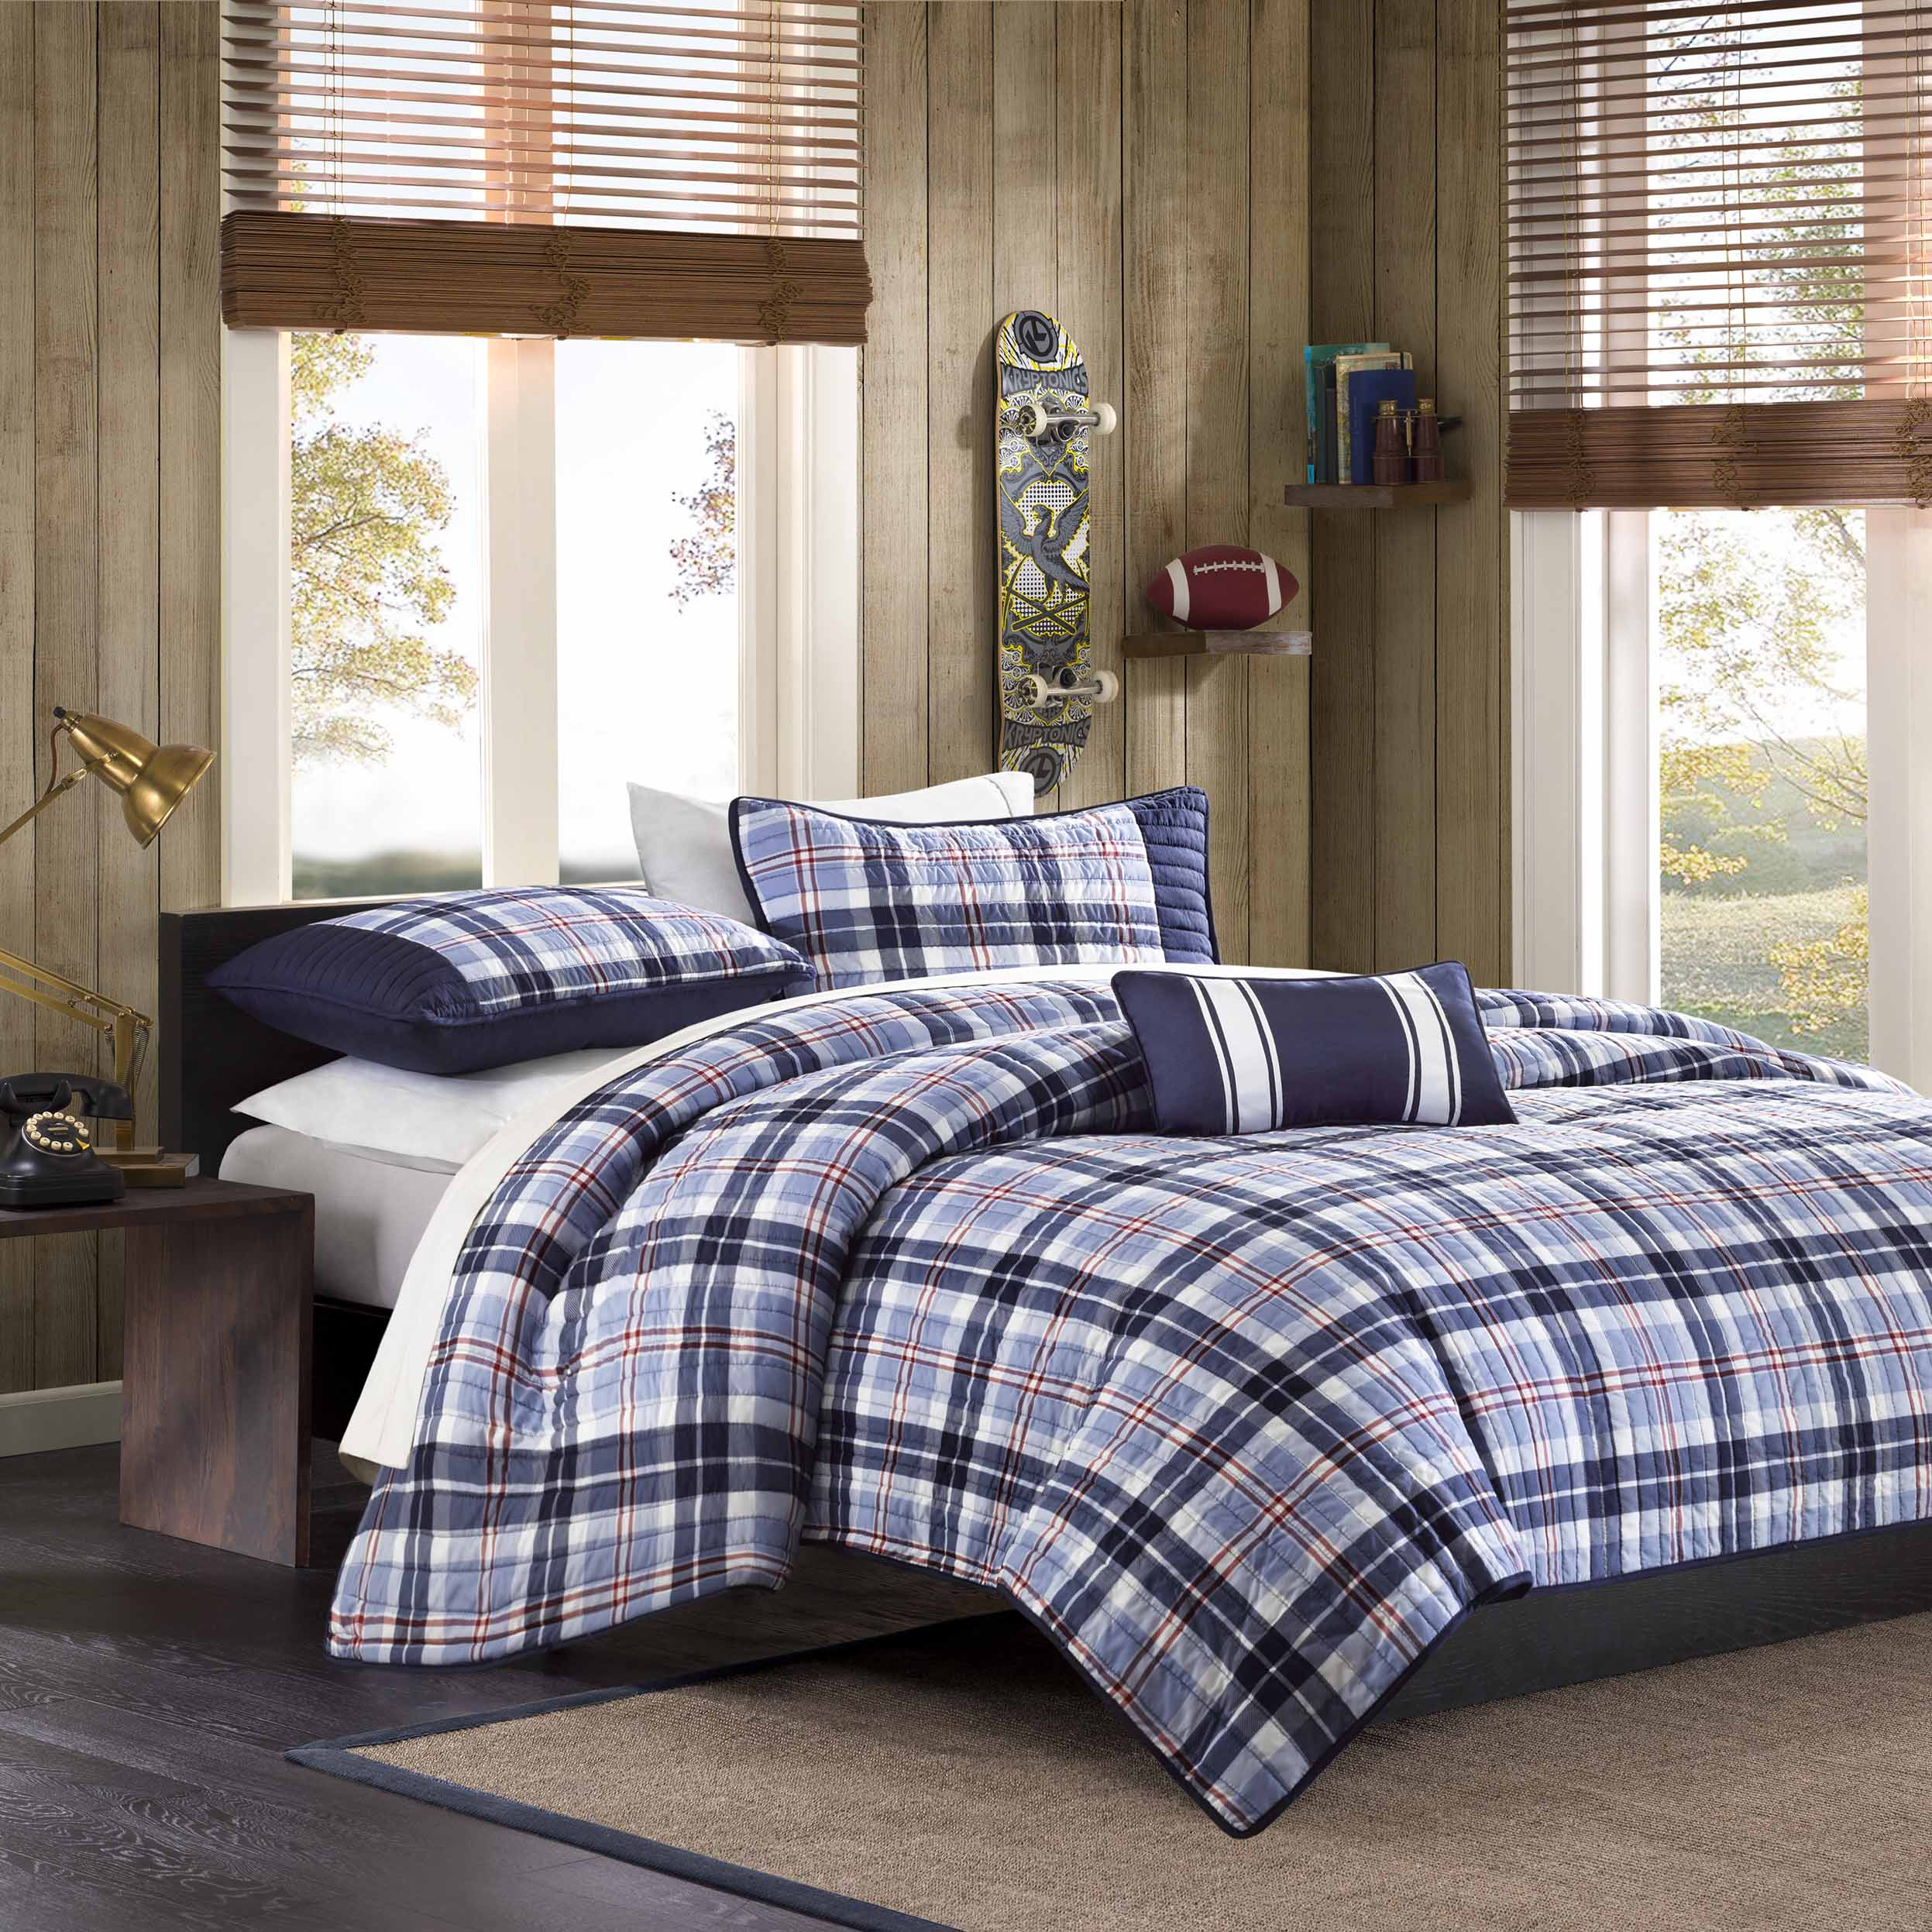 Mizone Alton Plaid Coverlet Set